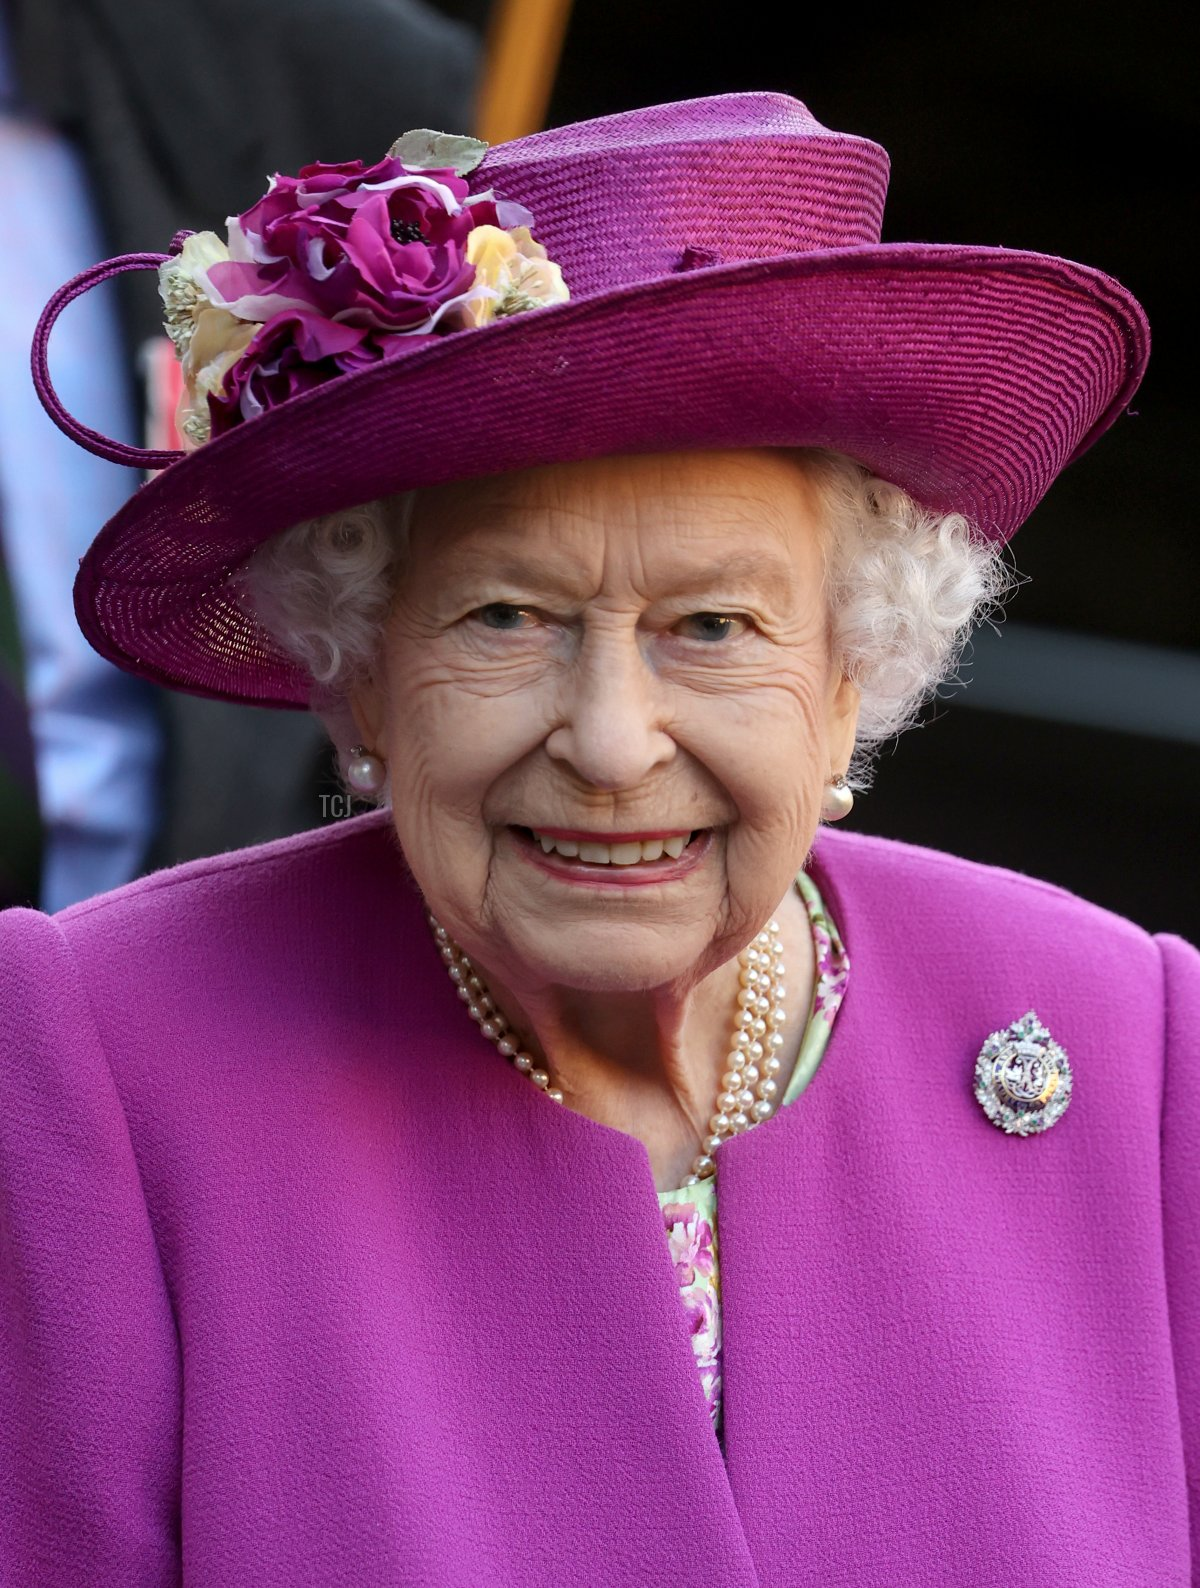 Queen Elizabeth II departs after opening the Argyll and Sutherland Highlanders' Museum during a visit to Stirling Castle on June 29, 2021 in Stirling, Scotland